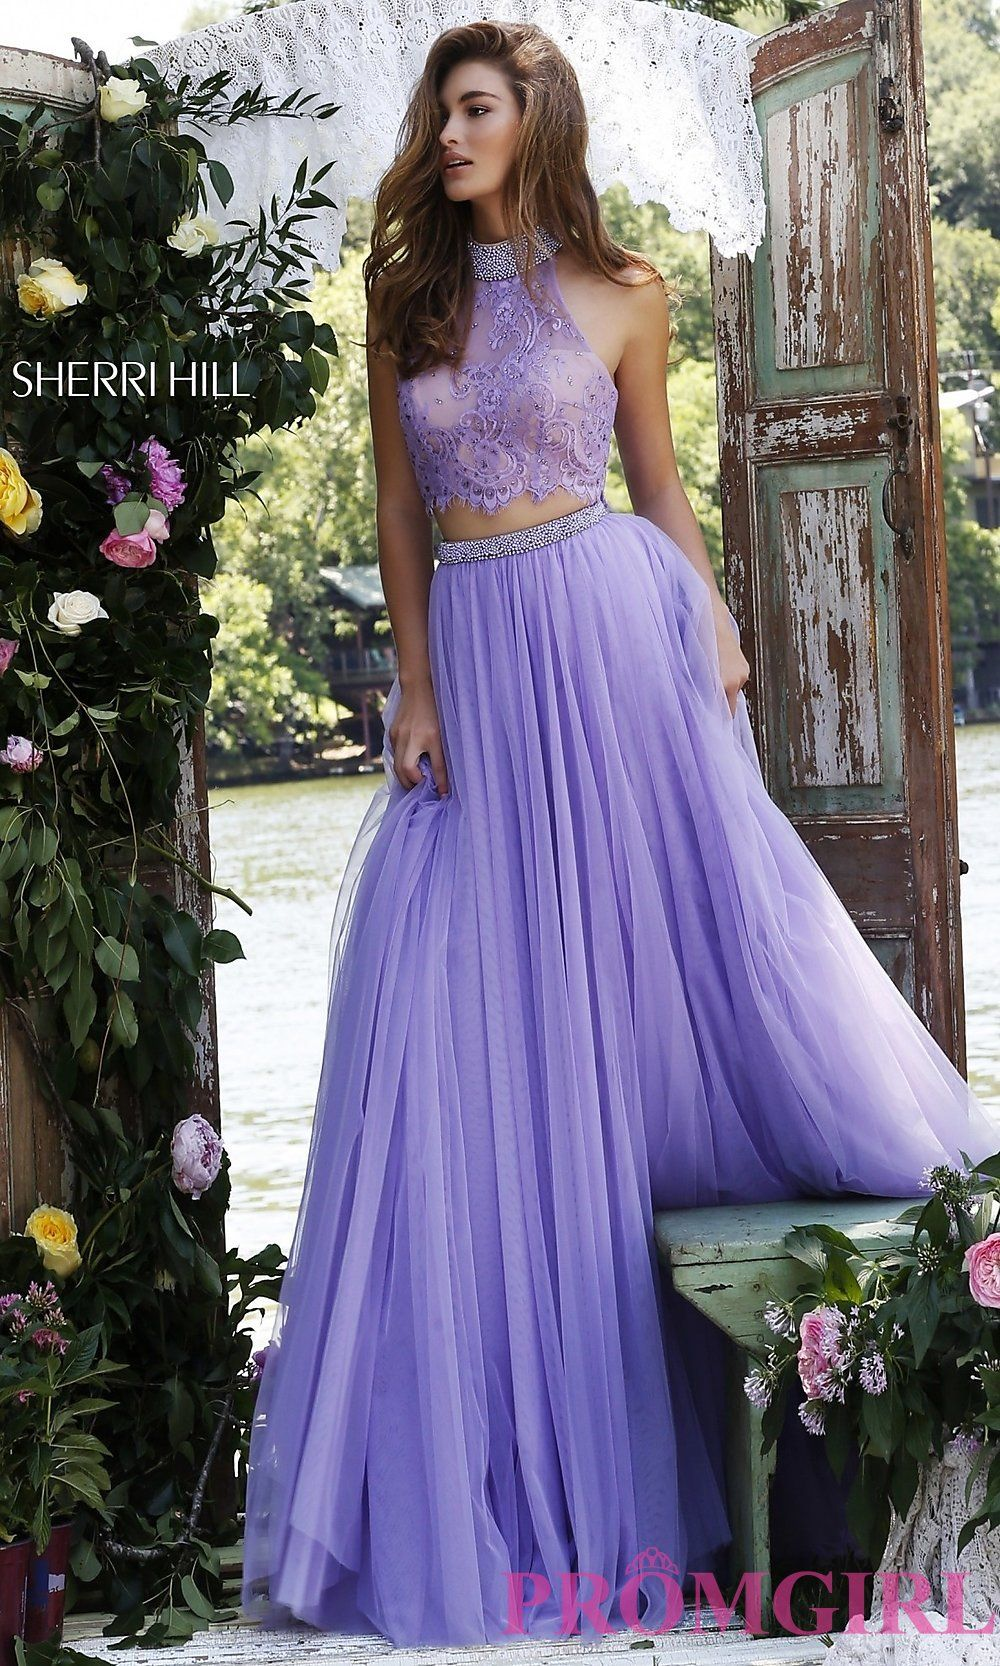 High Neck Sherri Hill Two Piece Prom Dress with Lace Top in Lilac ...